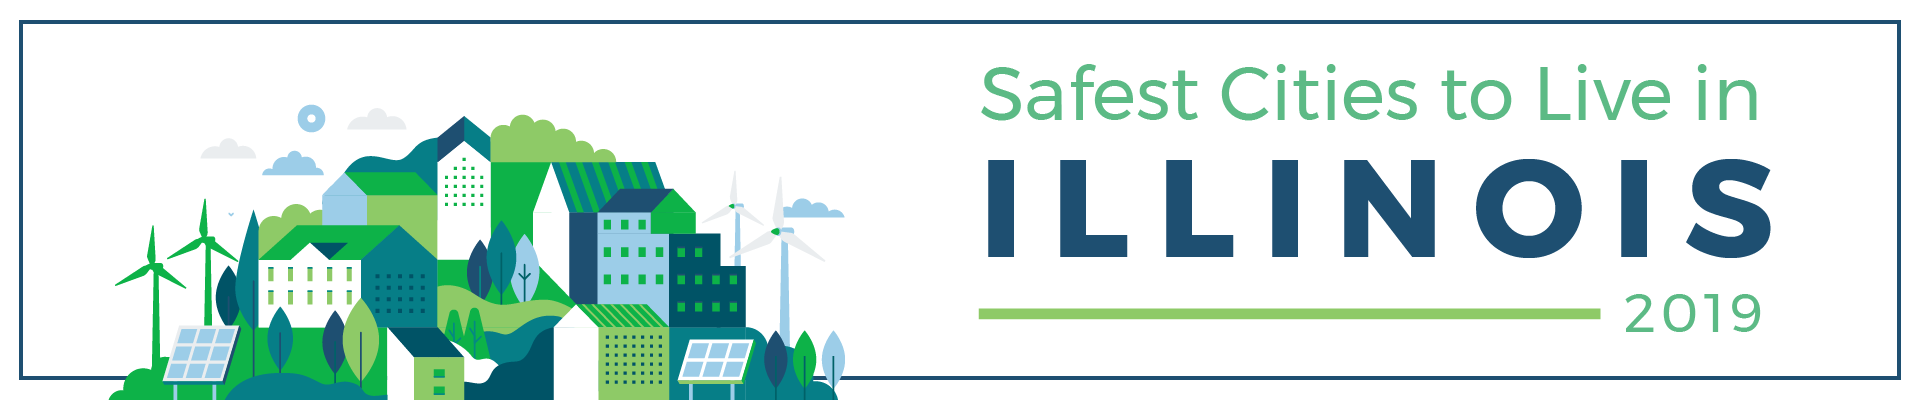 header - safest_cities_illinois_2019